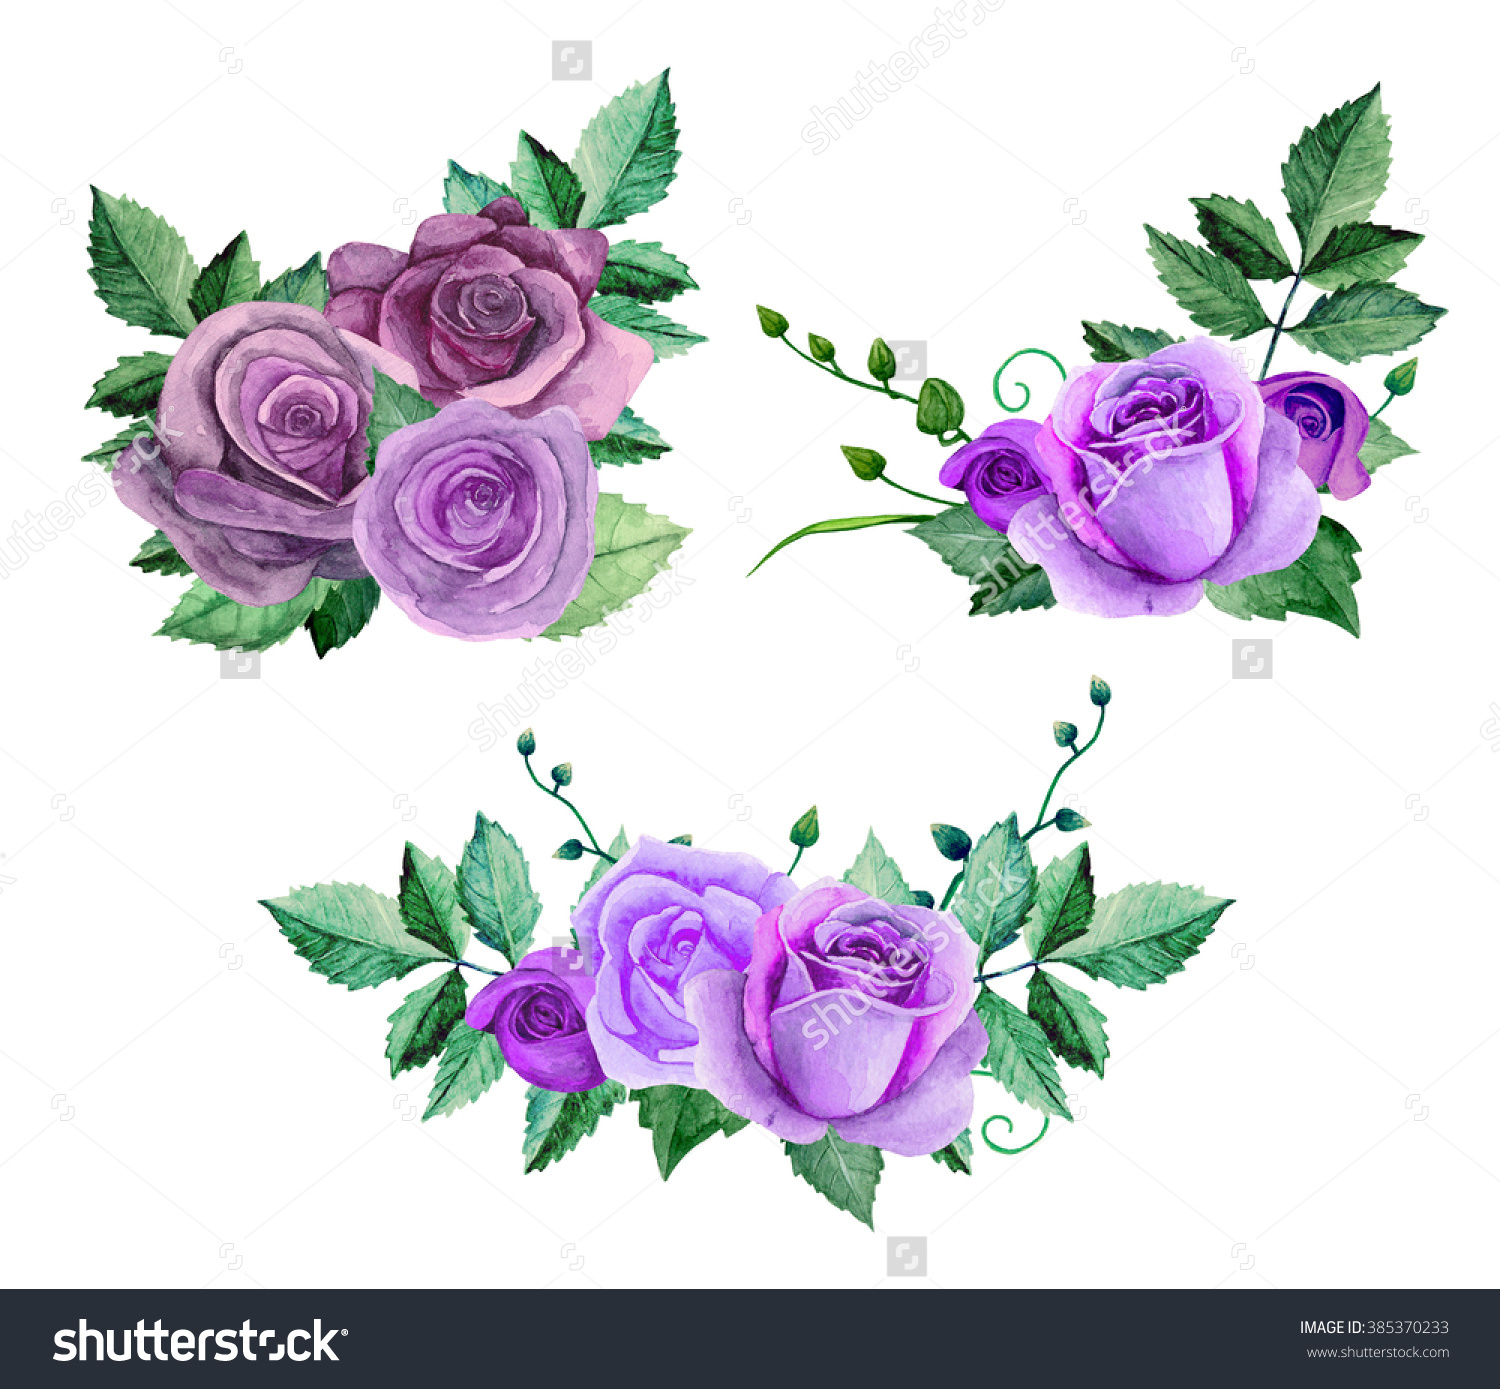 Watercolor Purple Roses Flowers Clip Art Stock Illustration.